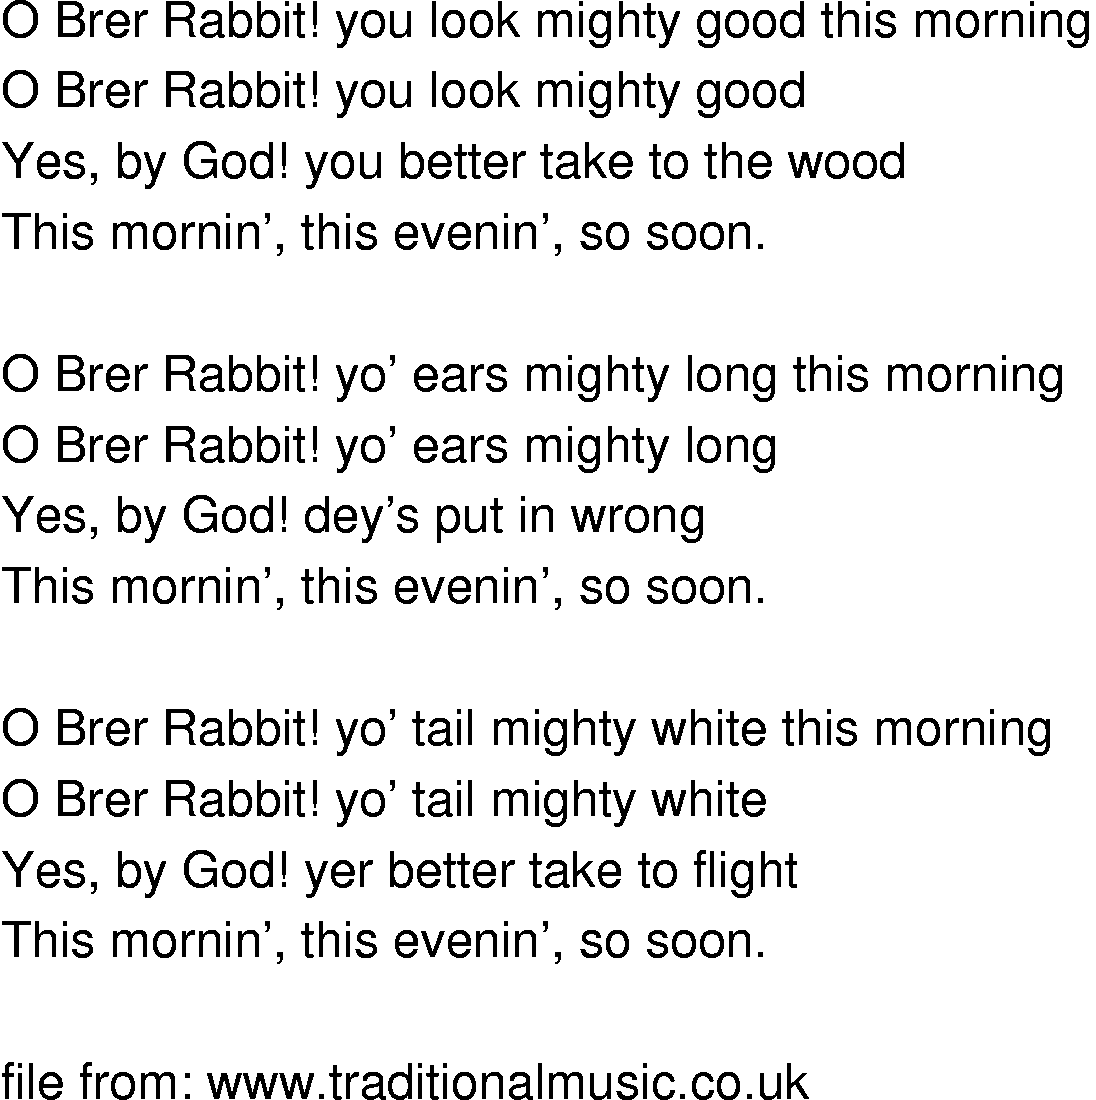 History of Brer Rabbit Related The History of Brer